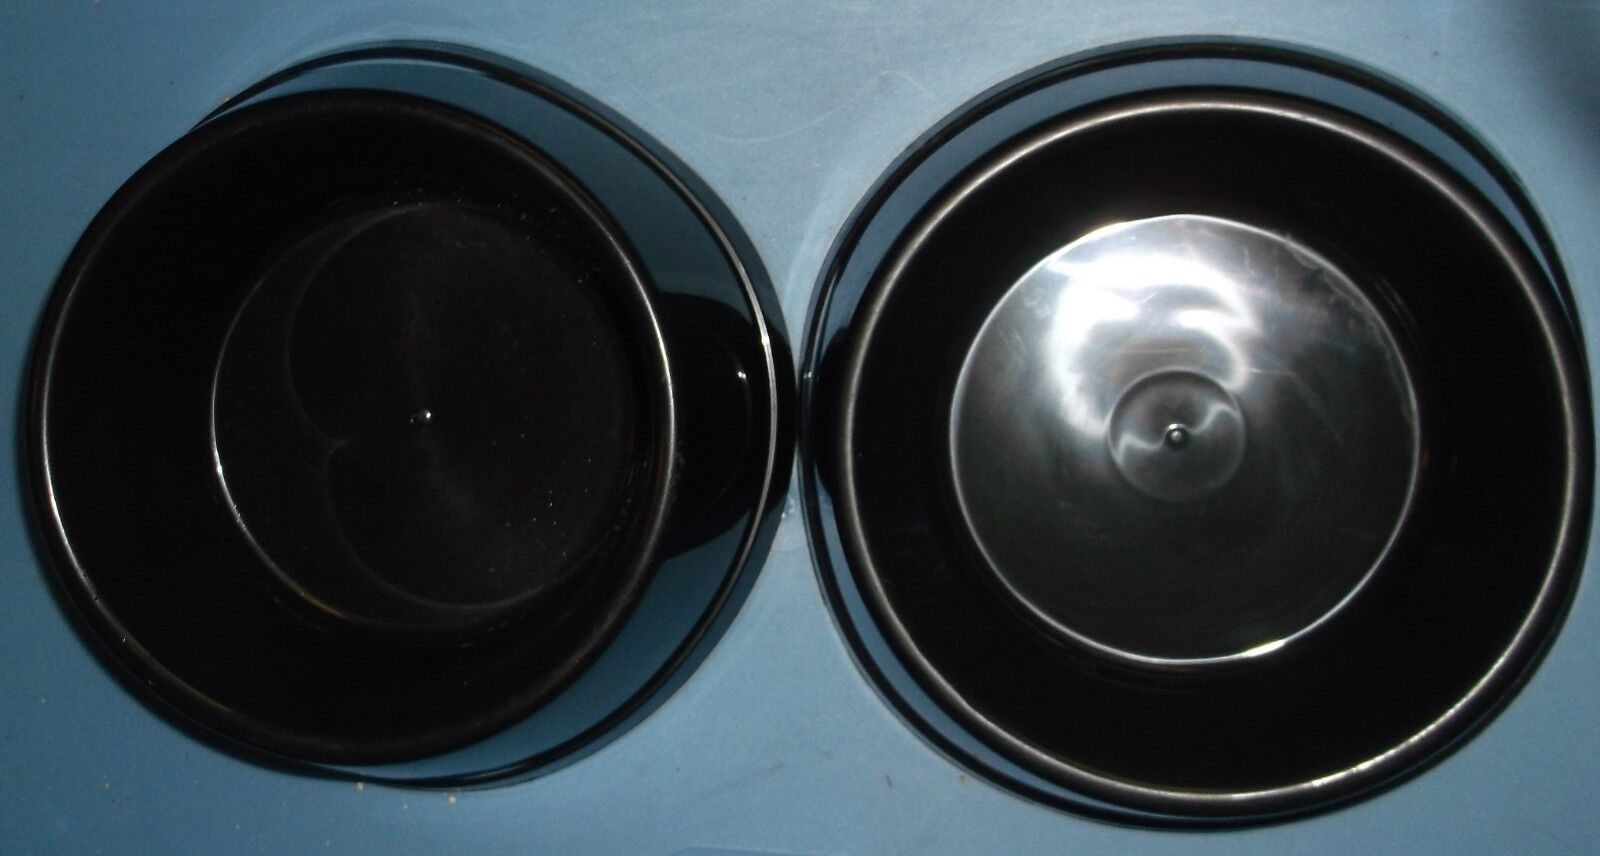 IKEA LURVIG PETS STABLE DOG CAT PUPPY FOOD WATER BOWL DISH BLACK LOT OF 2 NEW